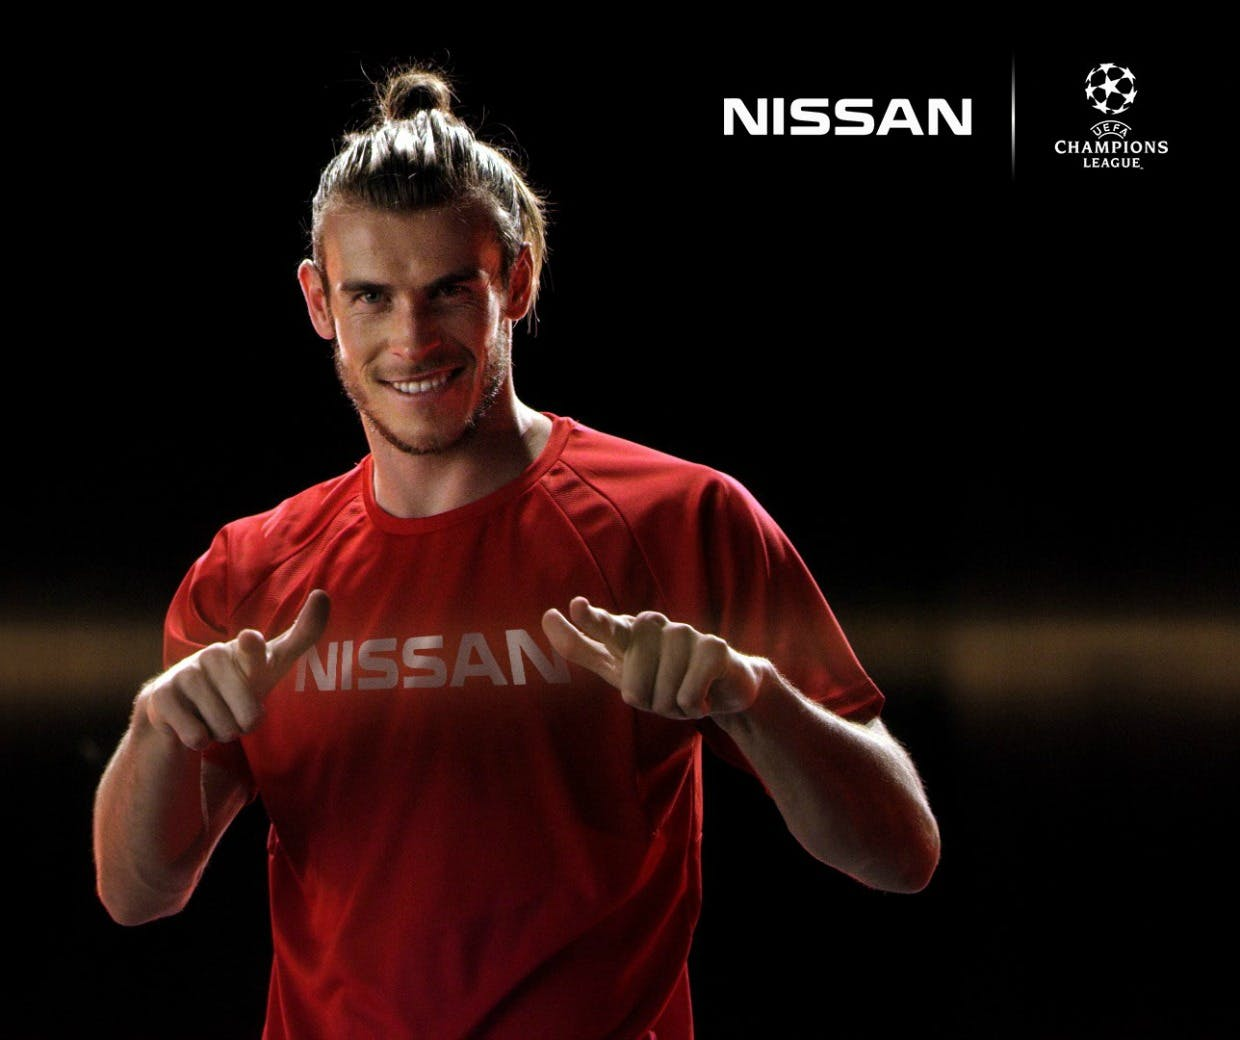 Nissan Champions League sponsorship